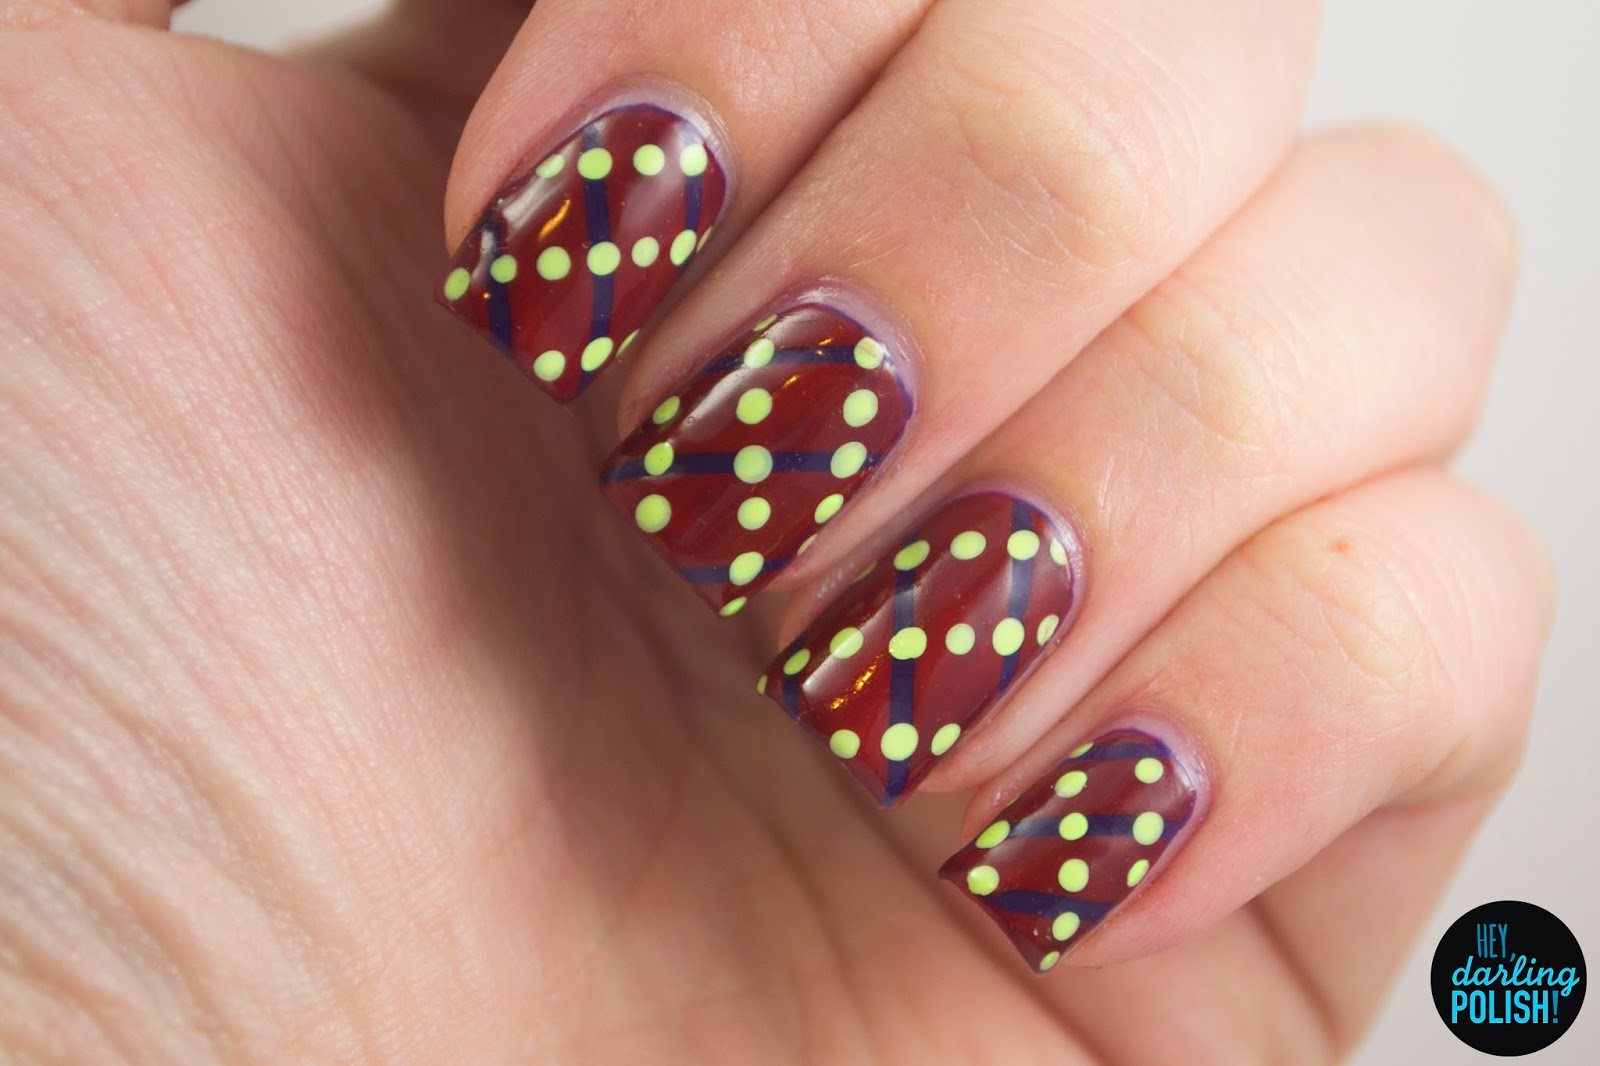 nails, nail art, nail polish, polish, stripes, dots, red, green, purple, tri polish challenge, tpc, hey darling polish